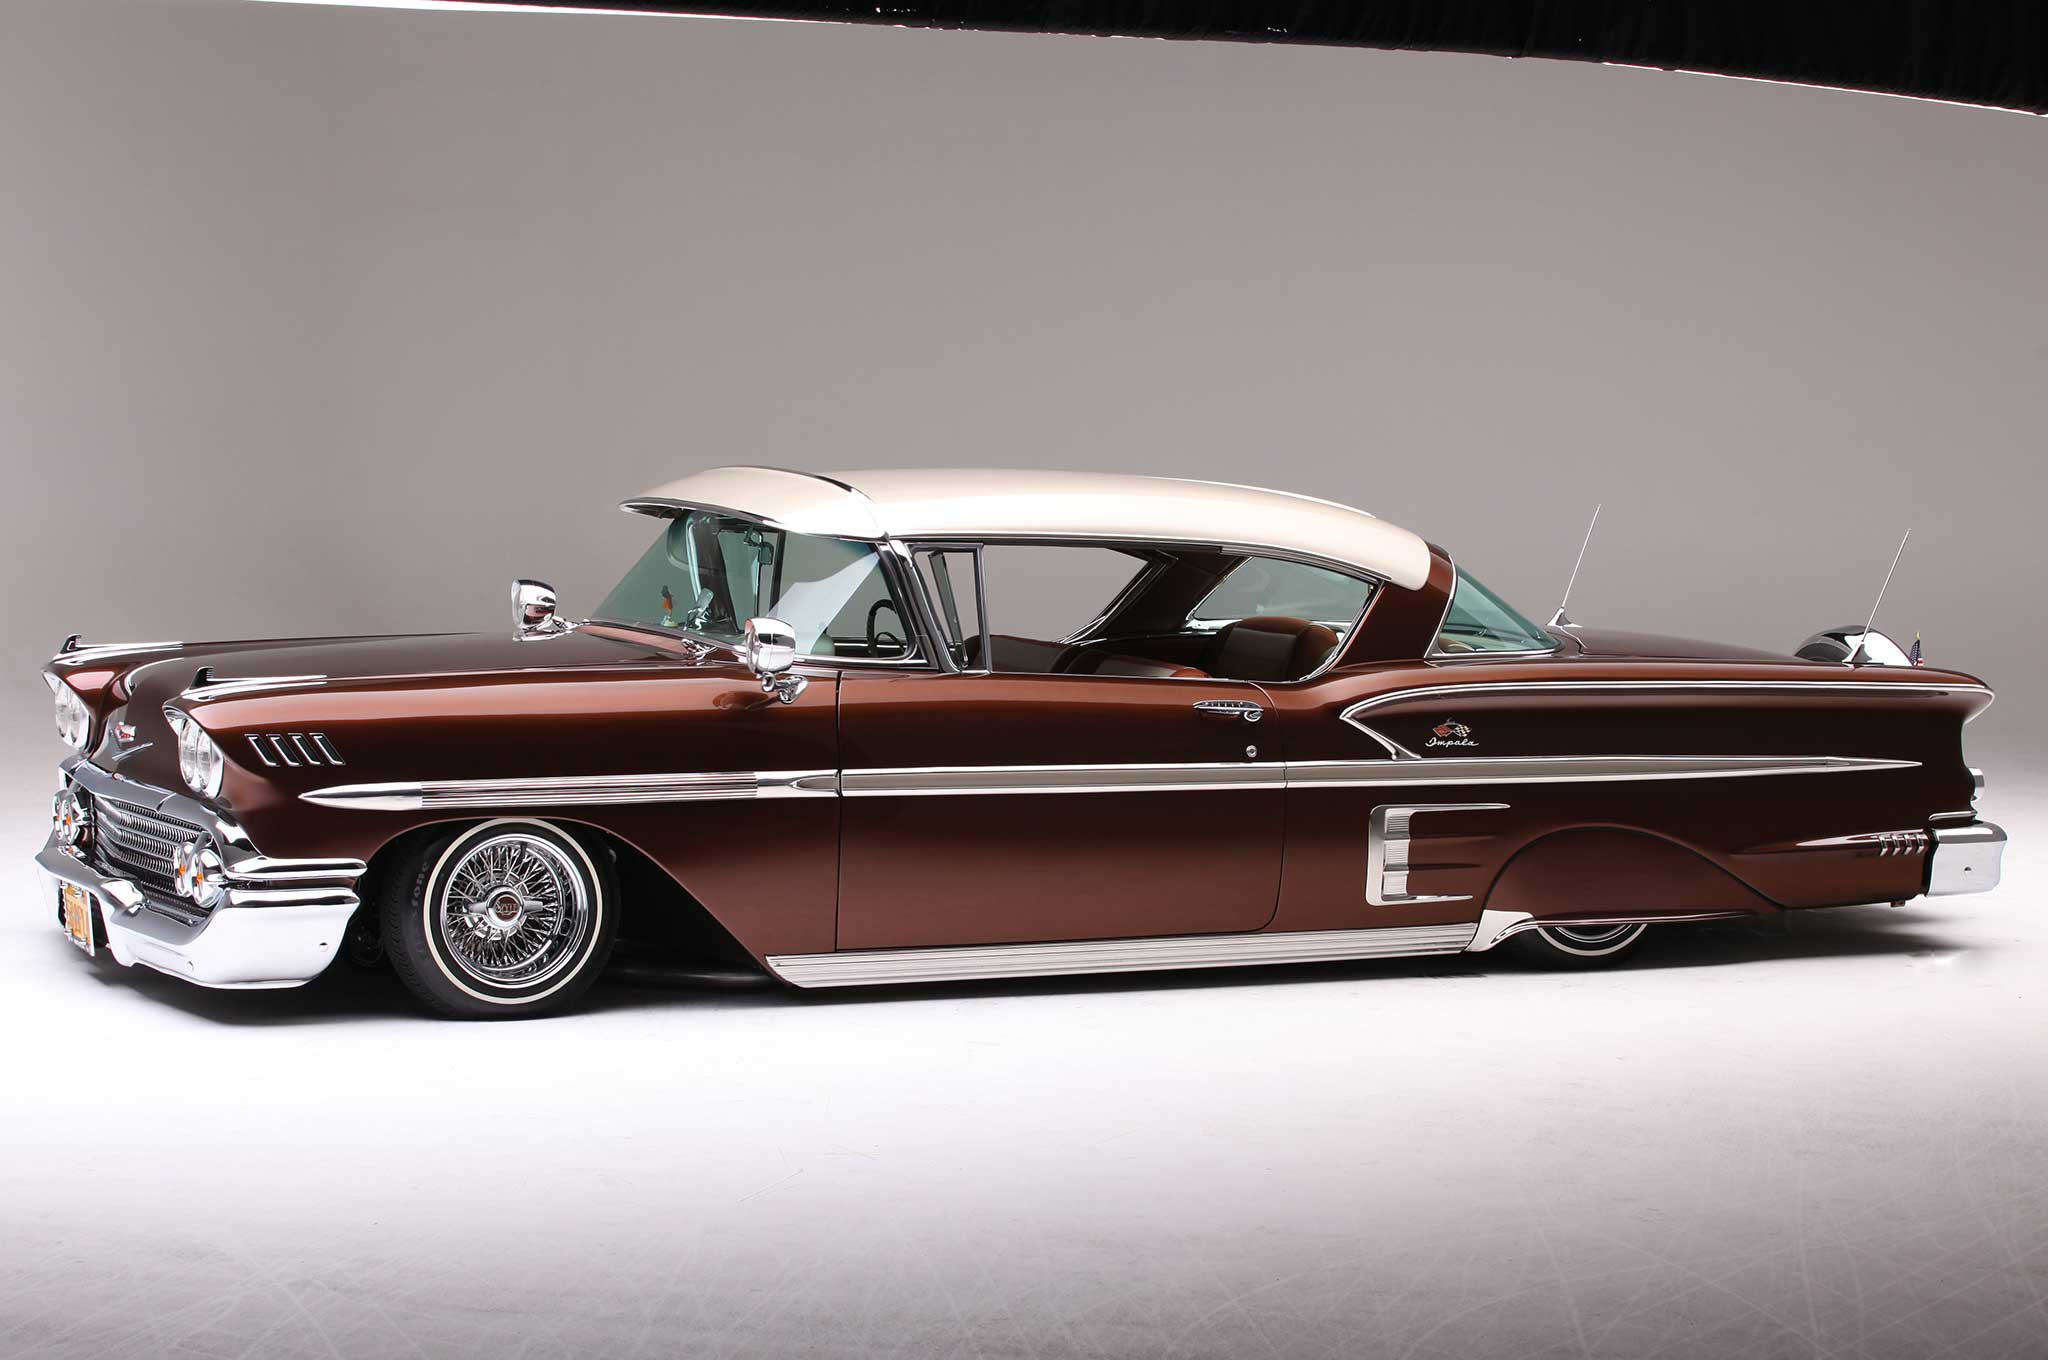 Chevy Truck New >> 1958 Chevrolet Impala - Gentleman's Style of a '58 - Lowrider